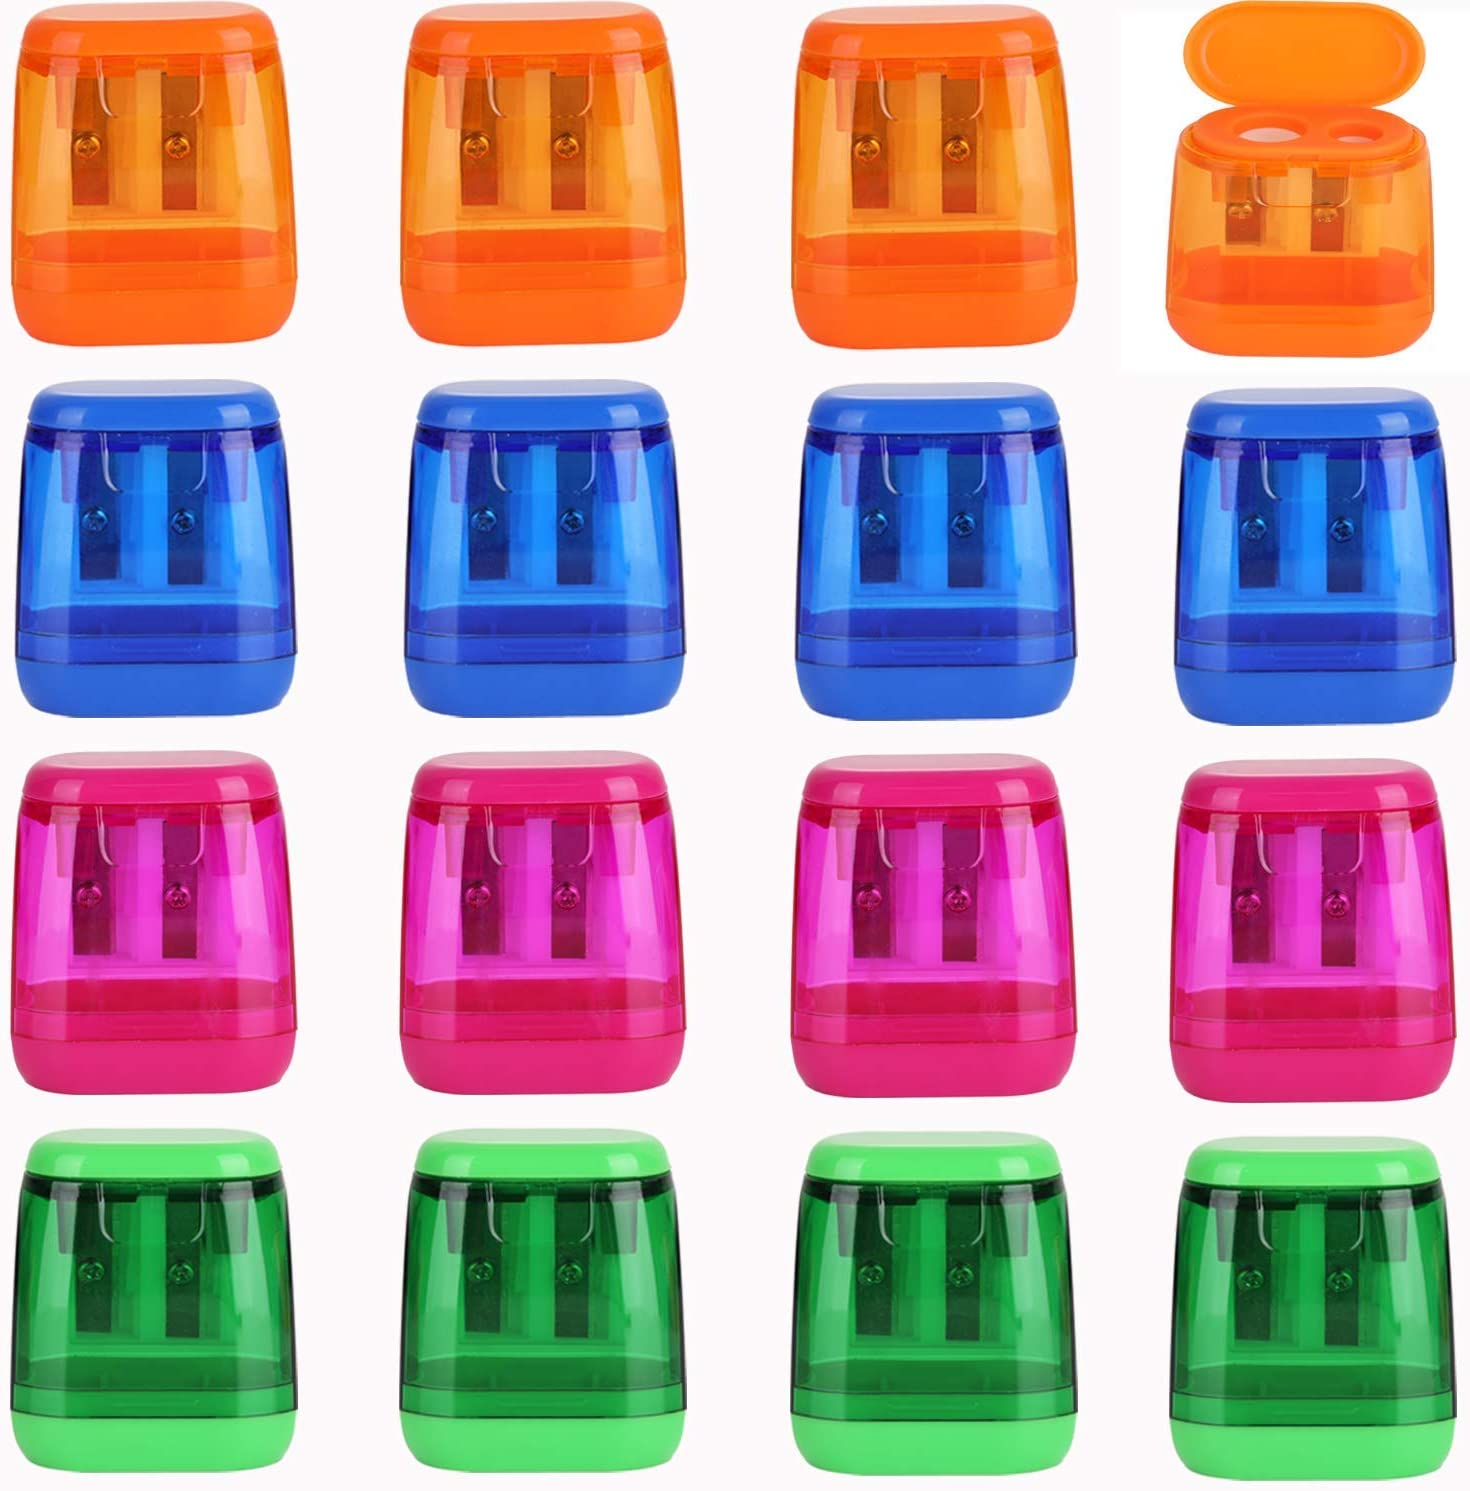 Pencil SharpenerDual Hole Pencil Sharpener Manual Pencil Sharpeners with Lid for School Home Office Supplies (12 Pieces)